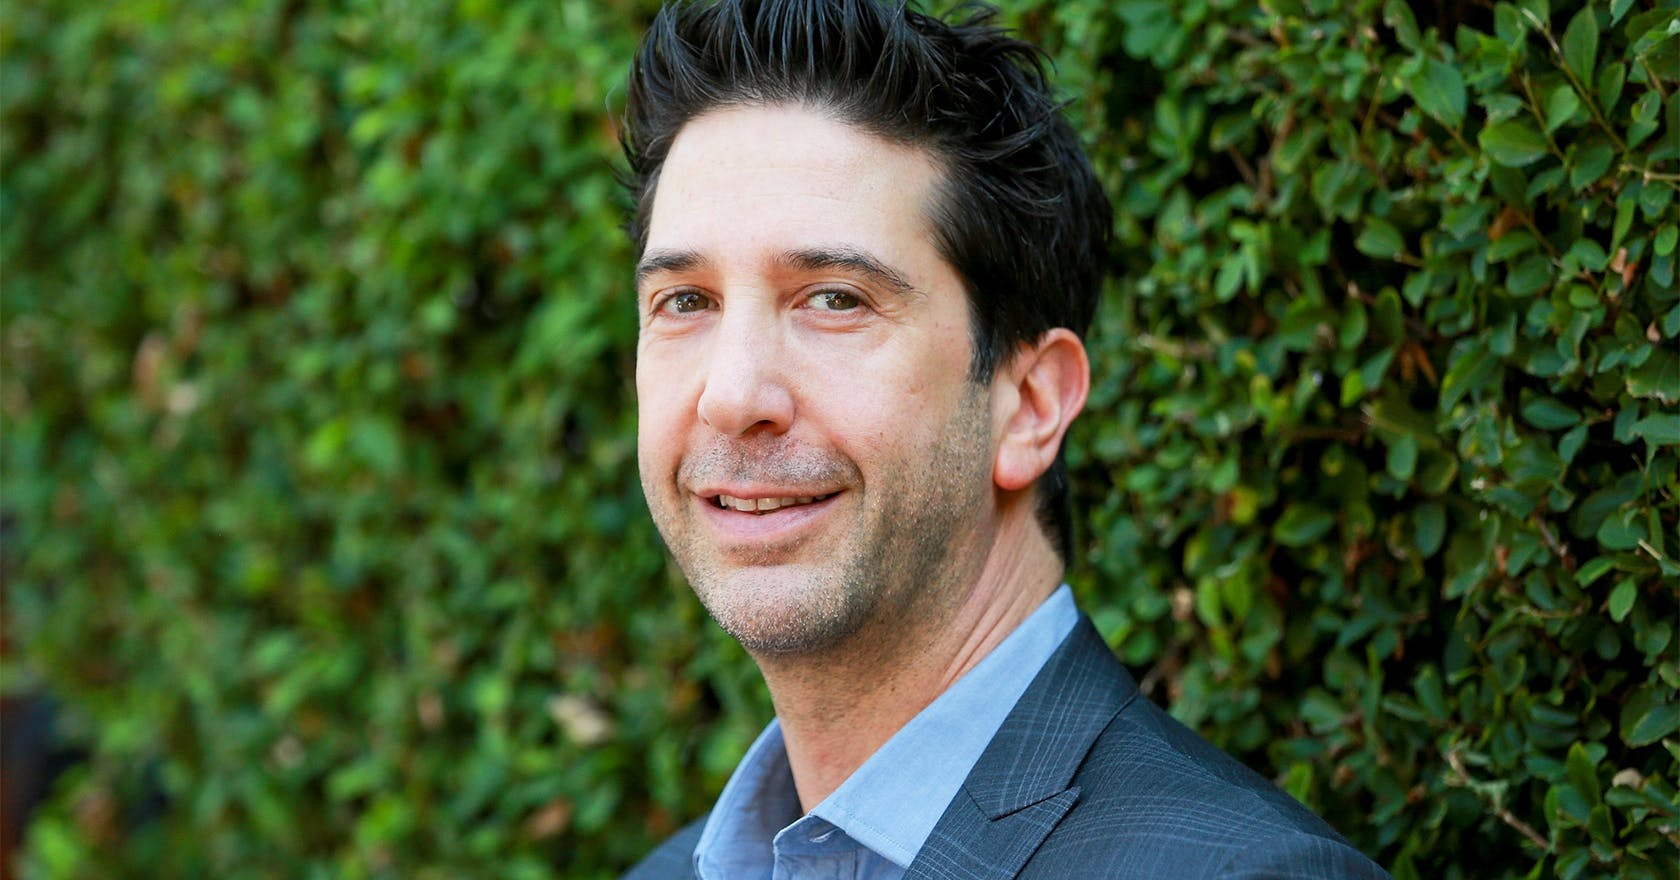 David Schwimmer shares his refreshing take on fatherhood on the Table Manners podcast